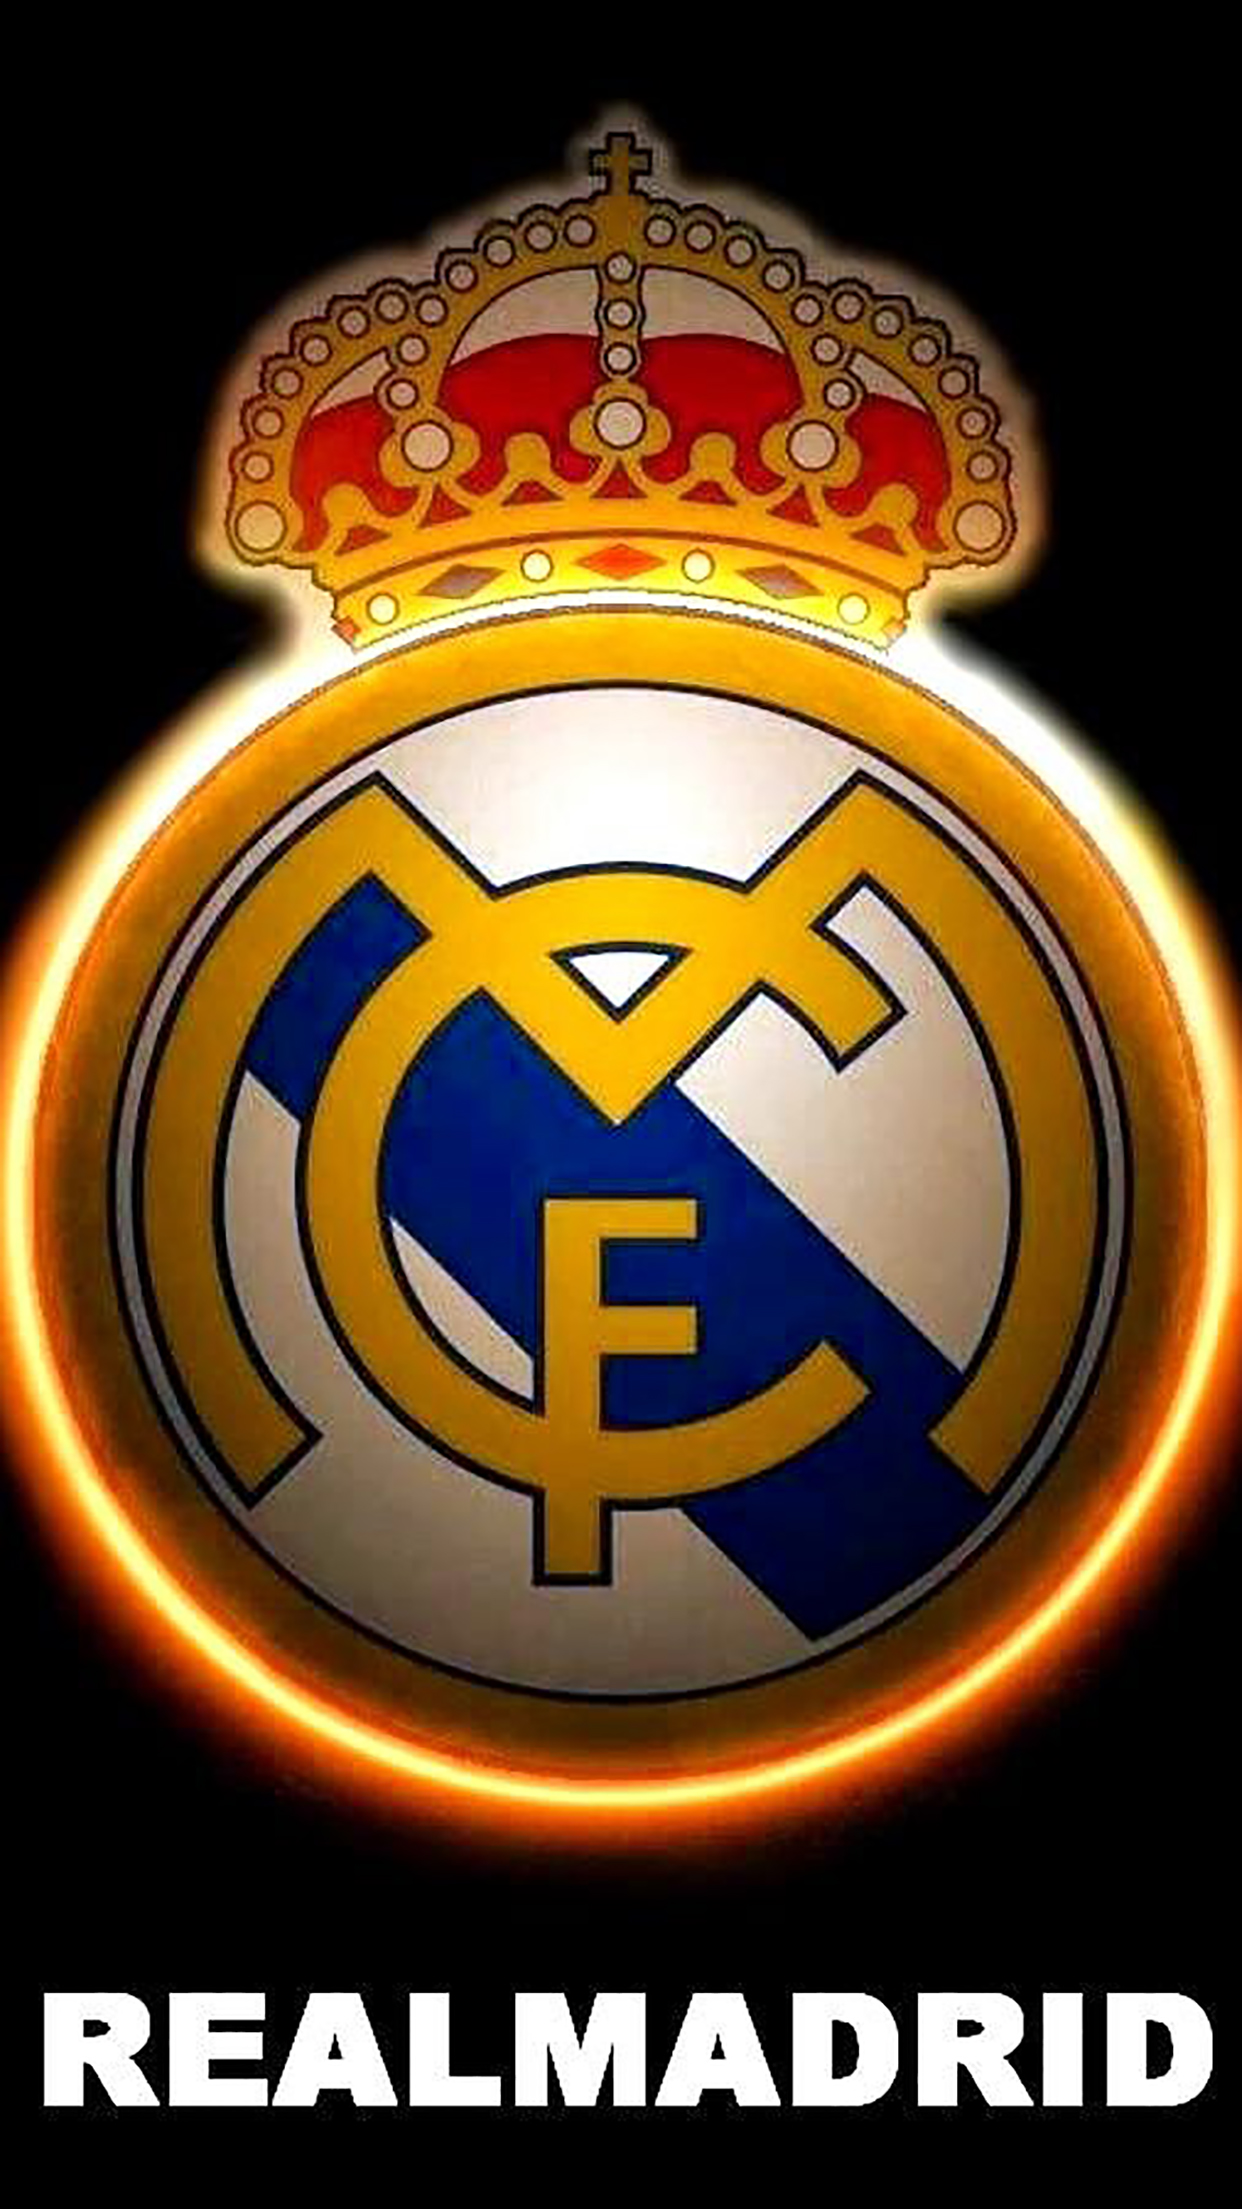 Real Madrid Logo 3 Wallpaper For Iphone X 8 7 6 Free Download